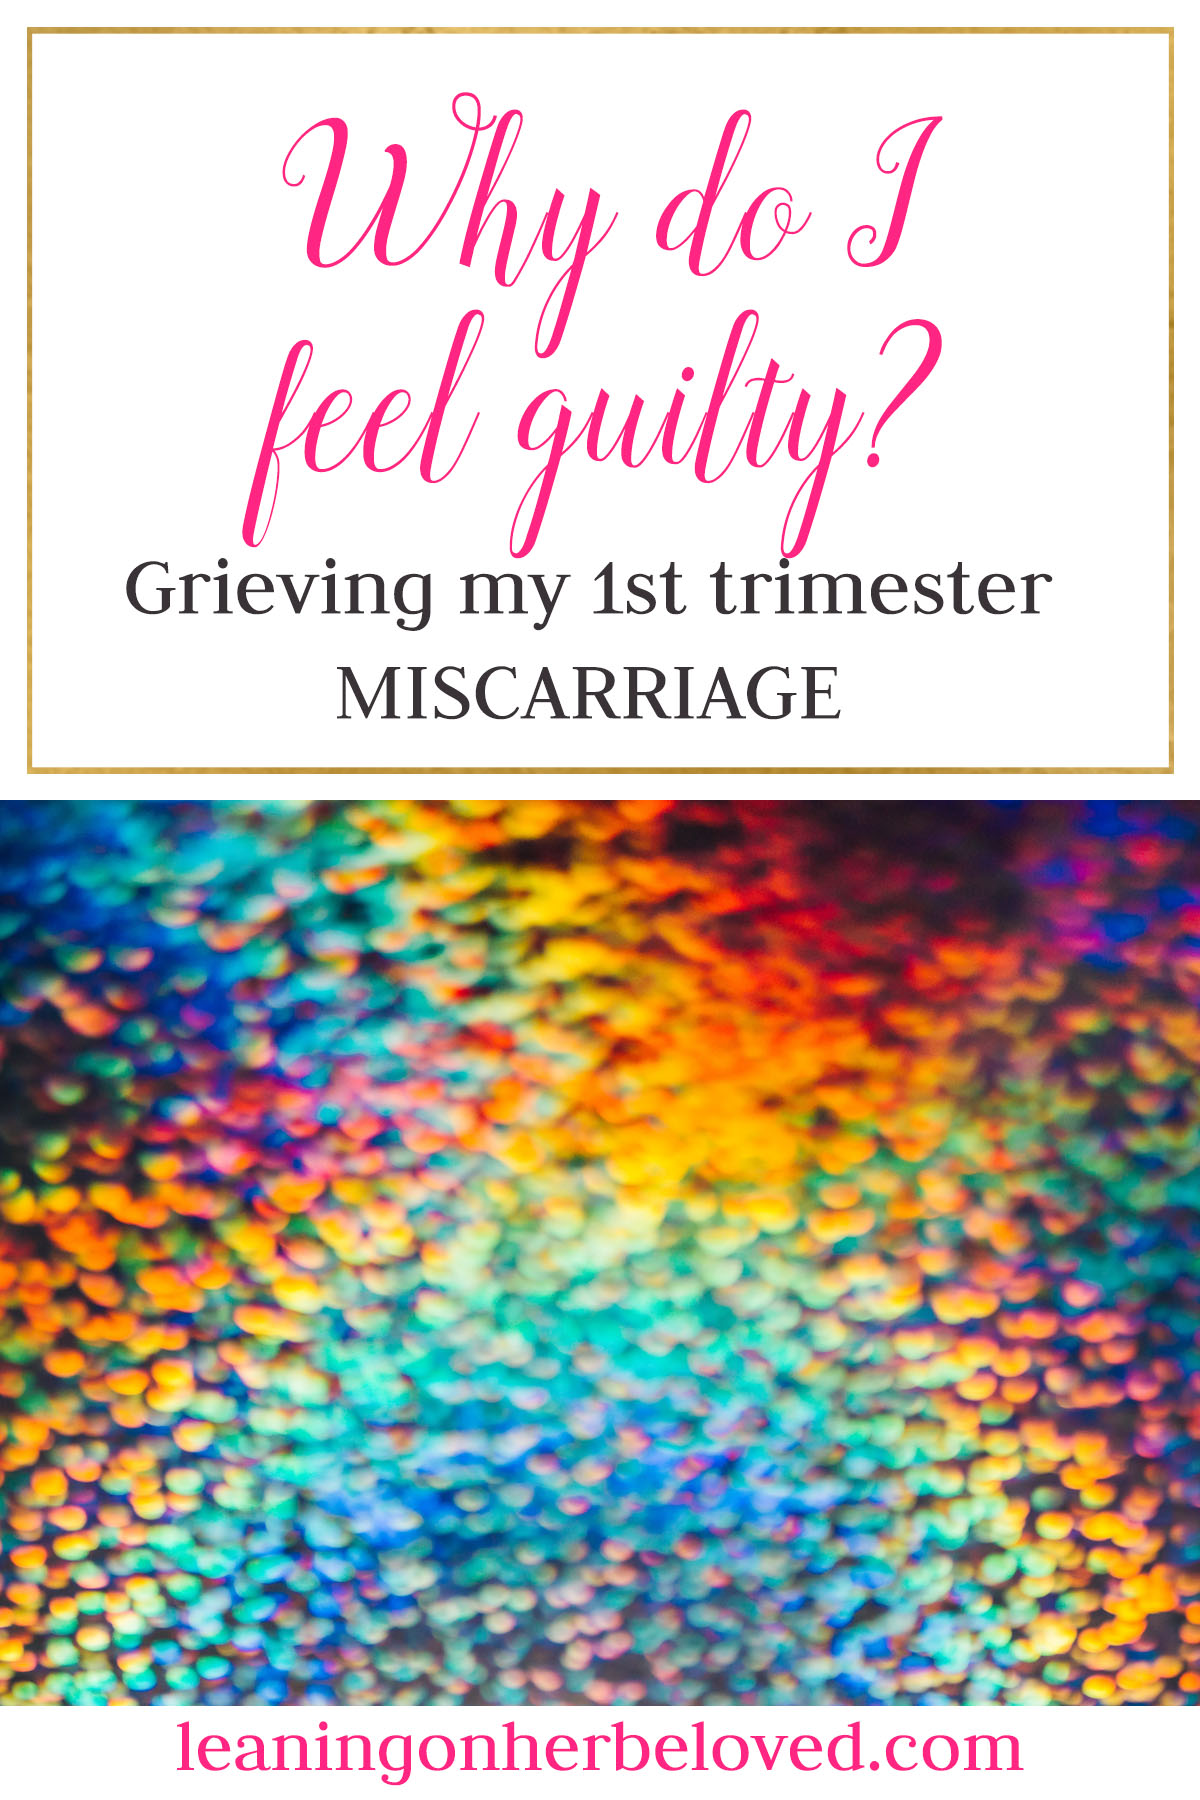 There is no shame in grieving your baby, no matter how far along you were when you lost them... #miscarriage #grief #pregnancy #firsttrimester